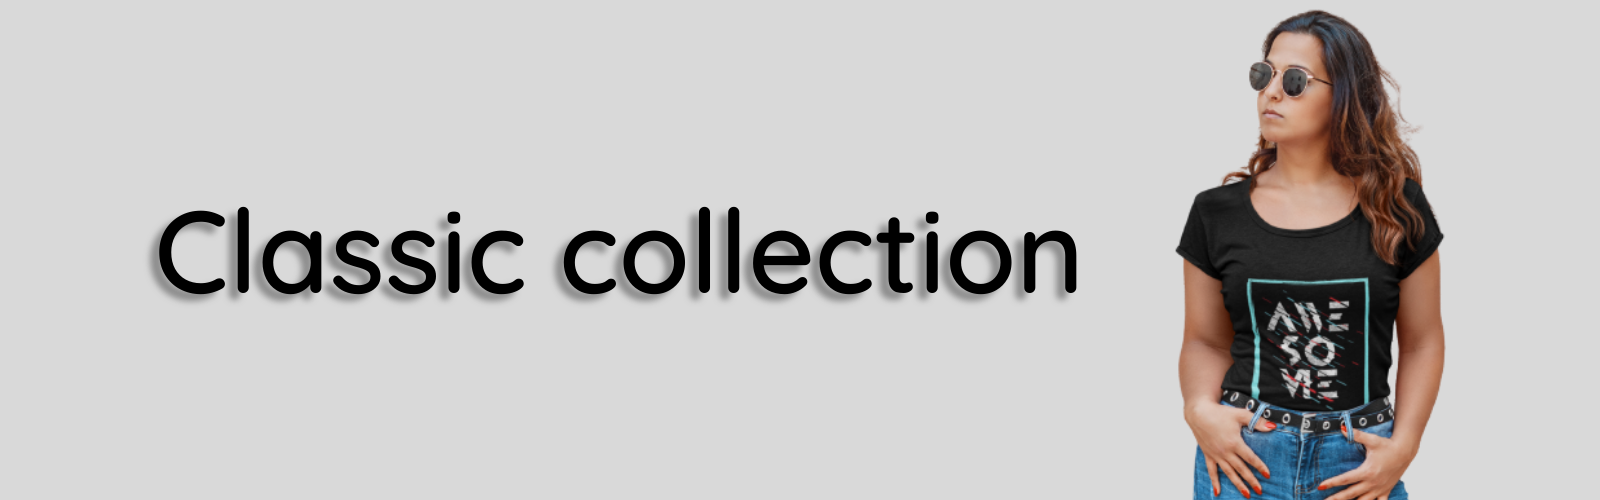 Comedy collection 2